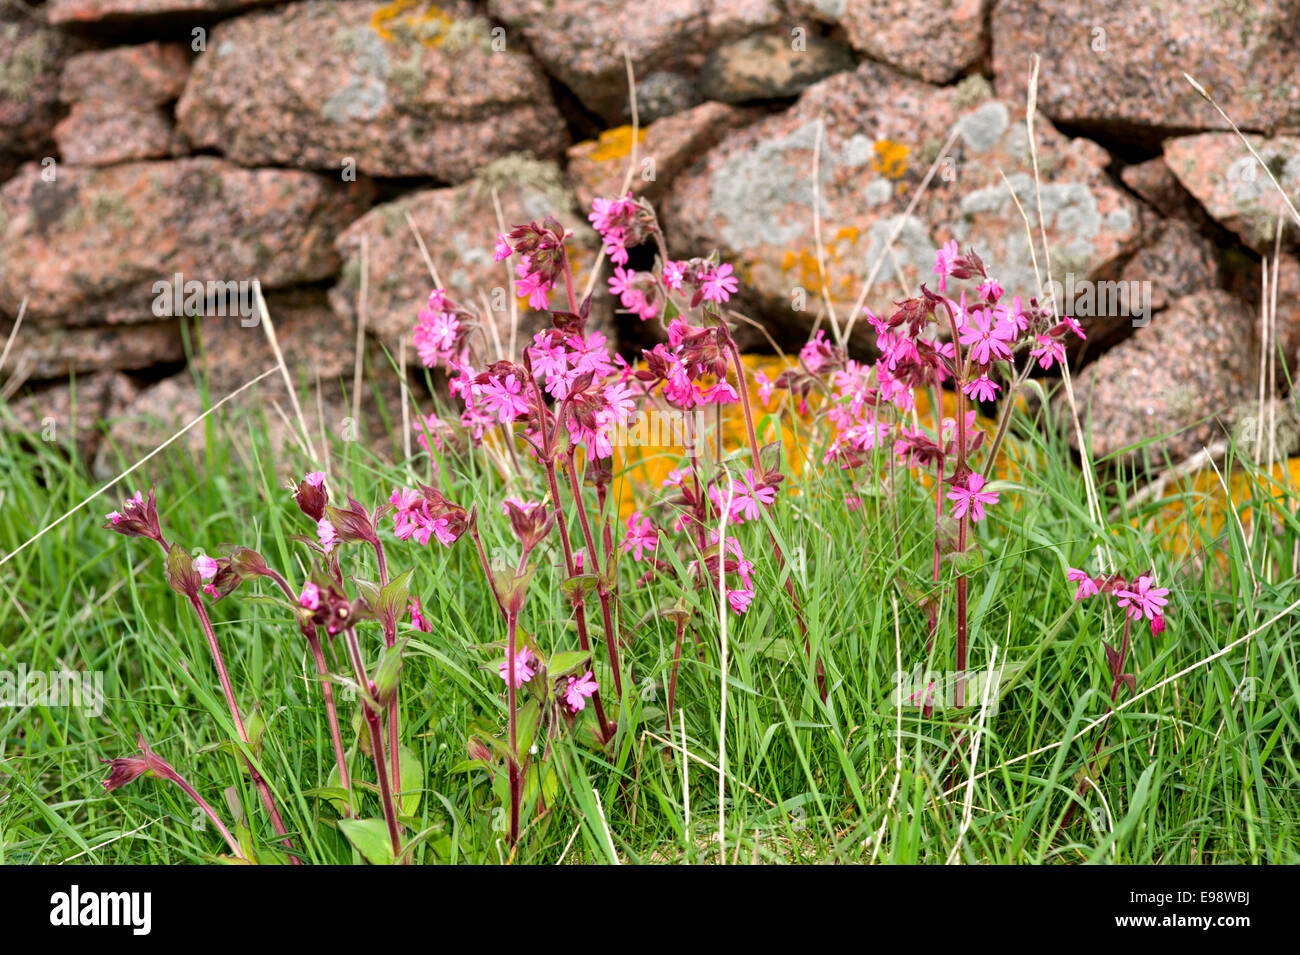 red campion flowers amongst the grass in front of a dry stone wall on the coast path from Bullers of Buchan in Aberdeenshire Stock Photo